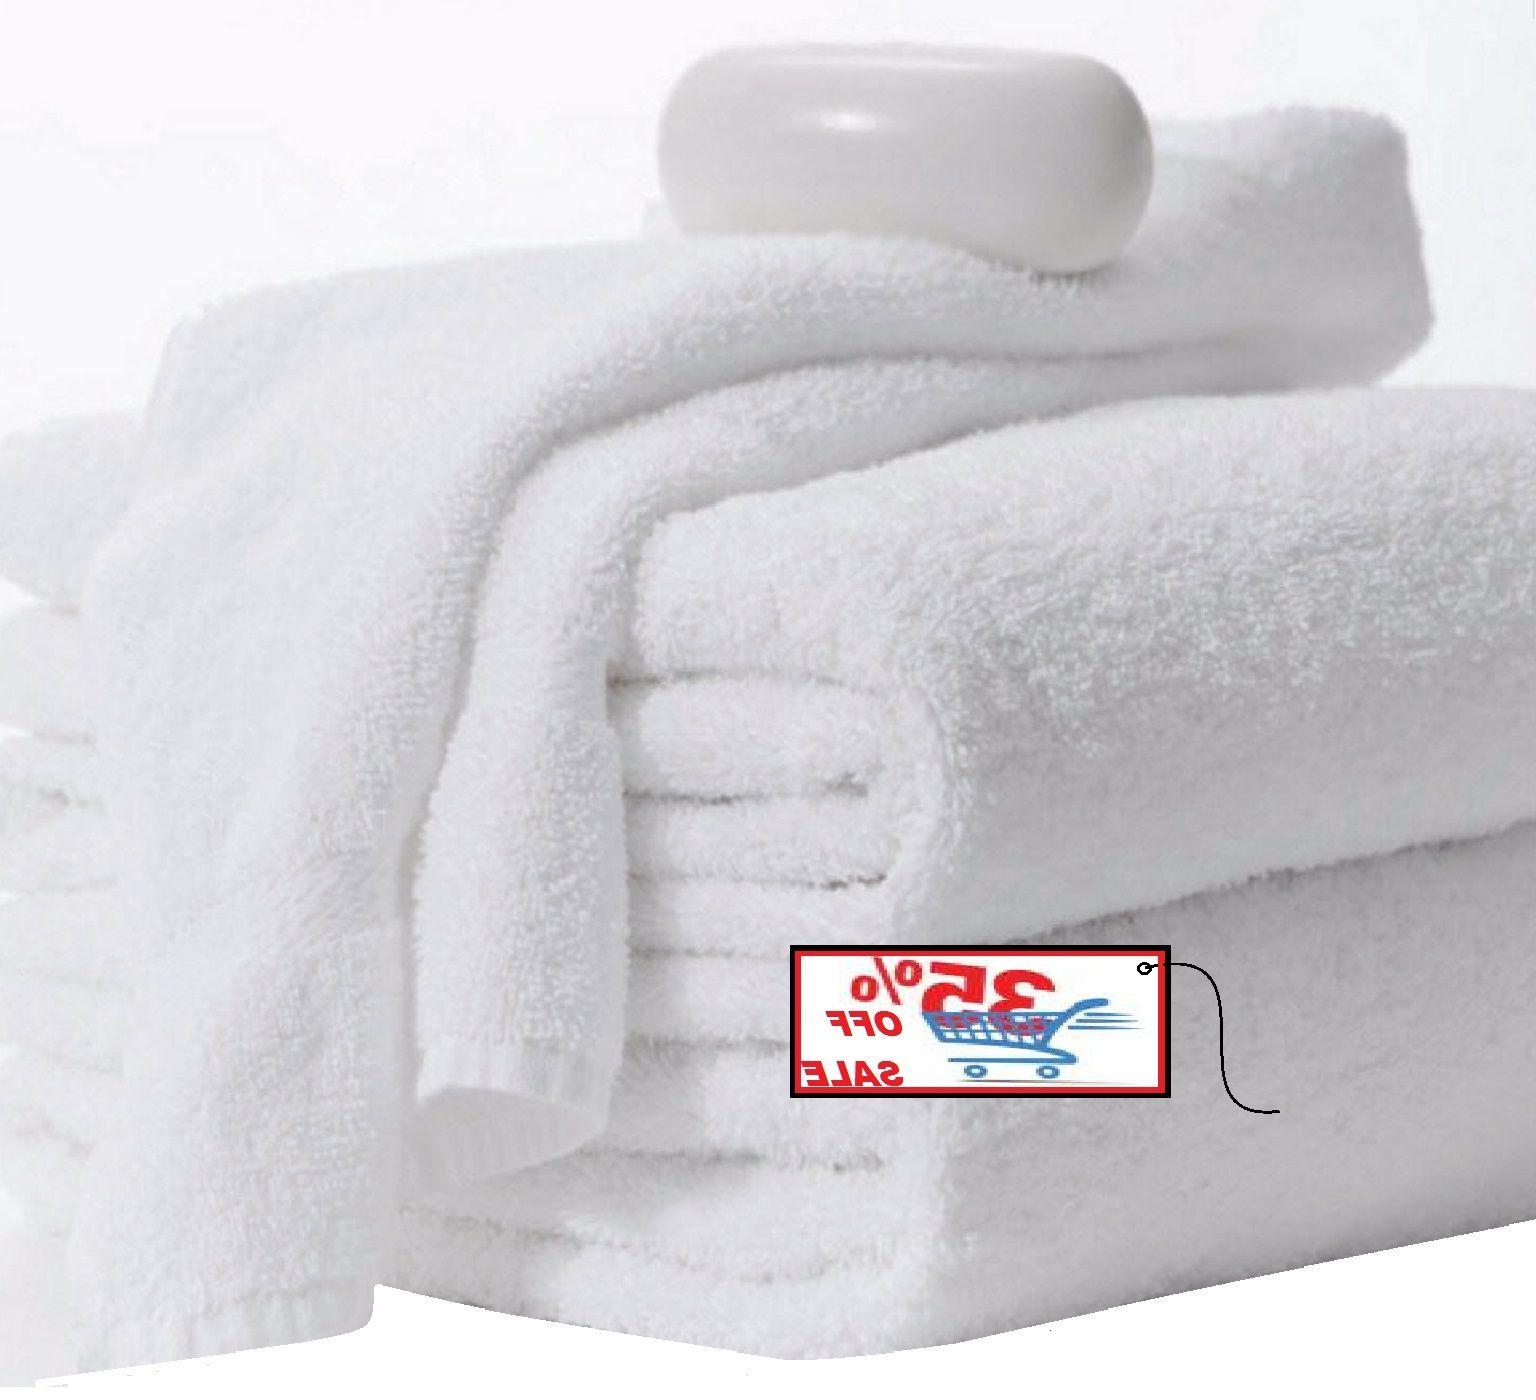 new bath towels 12 pack 24x50 inches white 11lbs 100% cotton